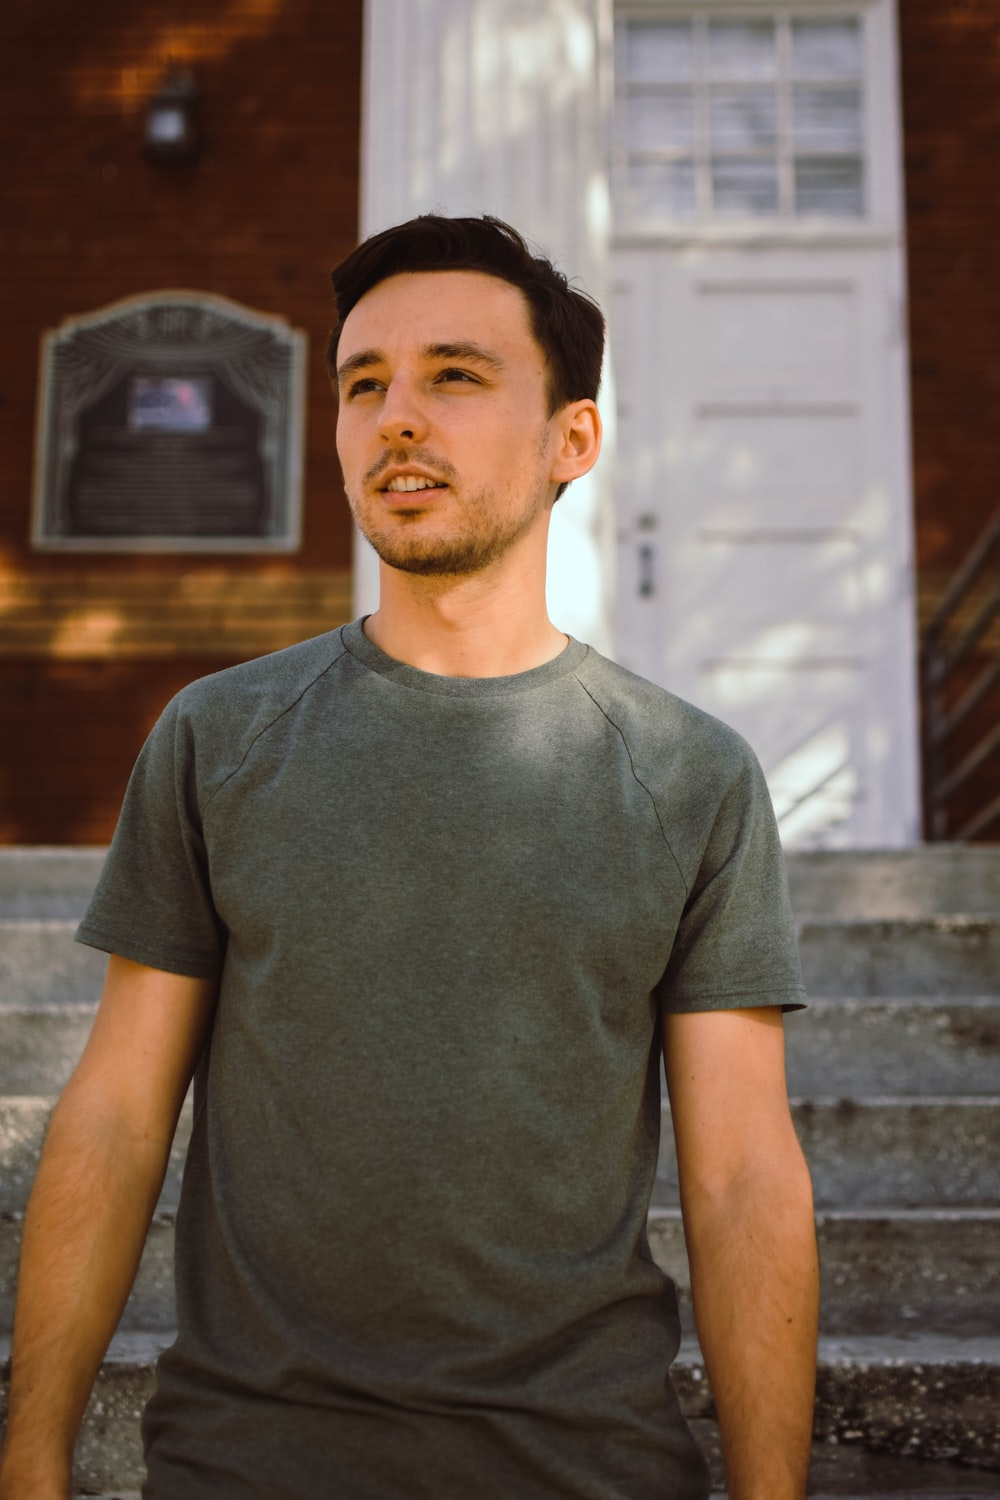 man in gray crew neck t-shirt standing near brown wooden wall during daytime